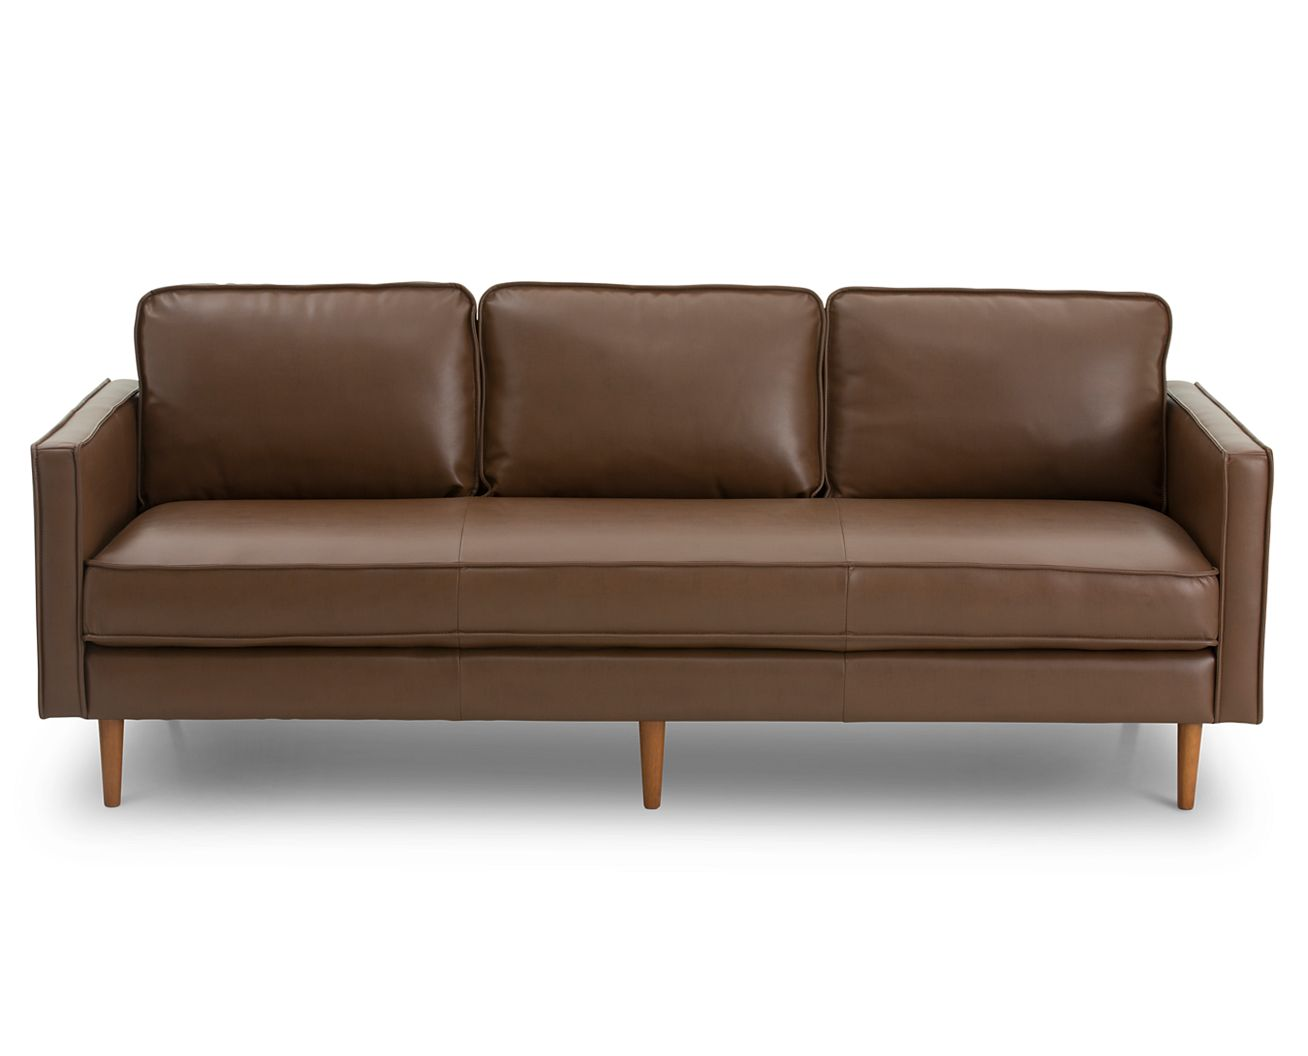 Denmark Sofa Clearance